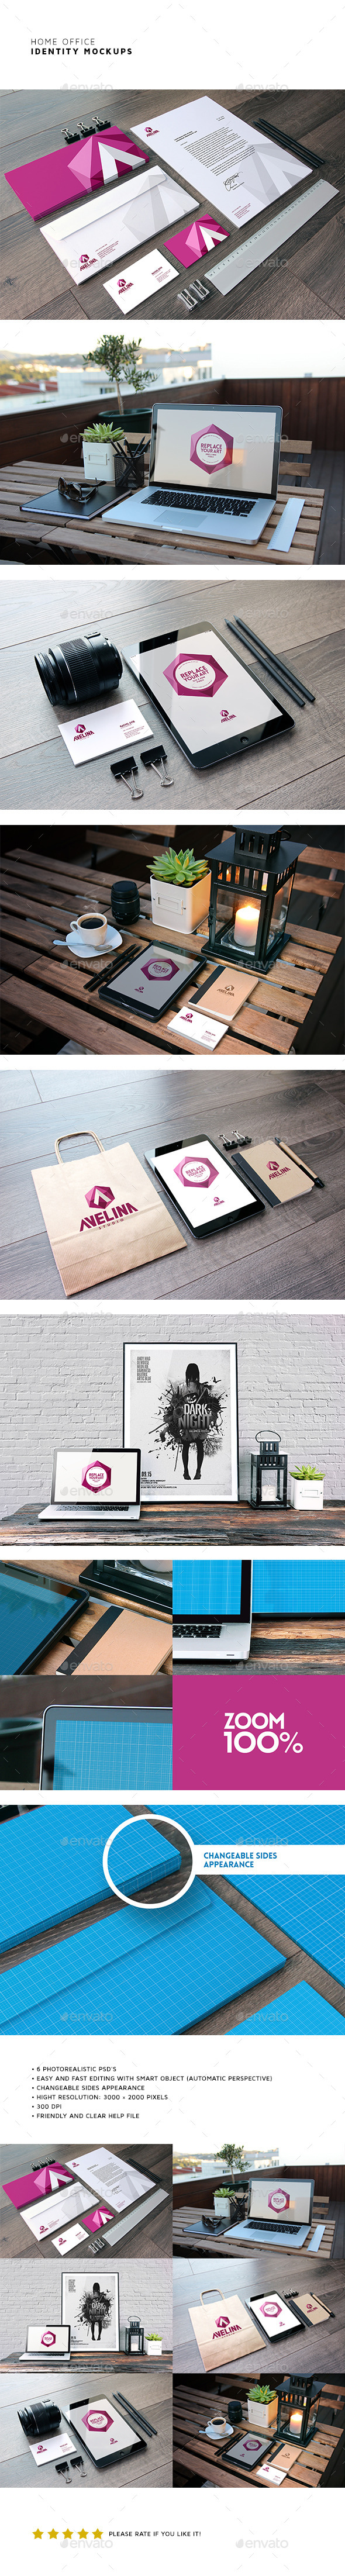 Coffee Cafe Branding Identity Mockup (Stationery)